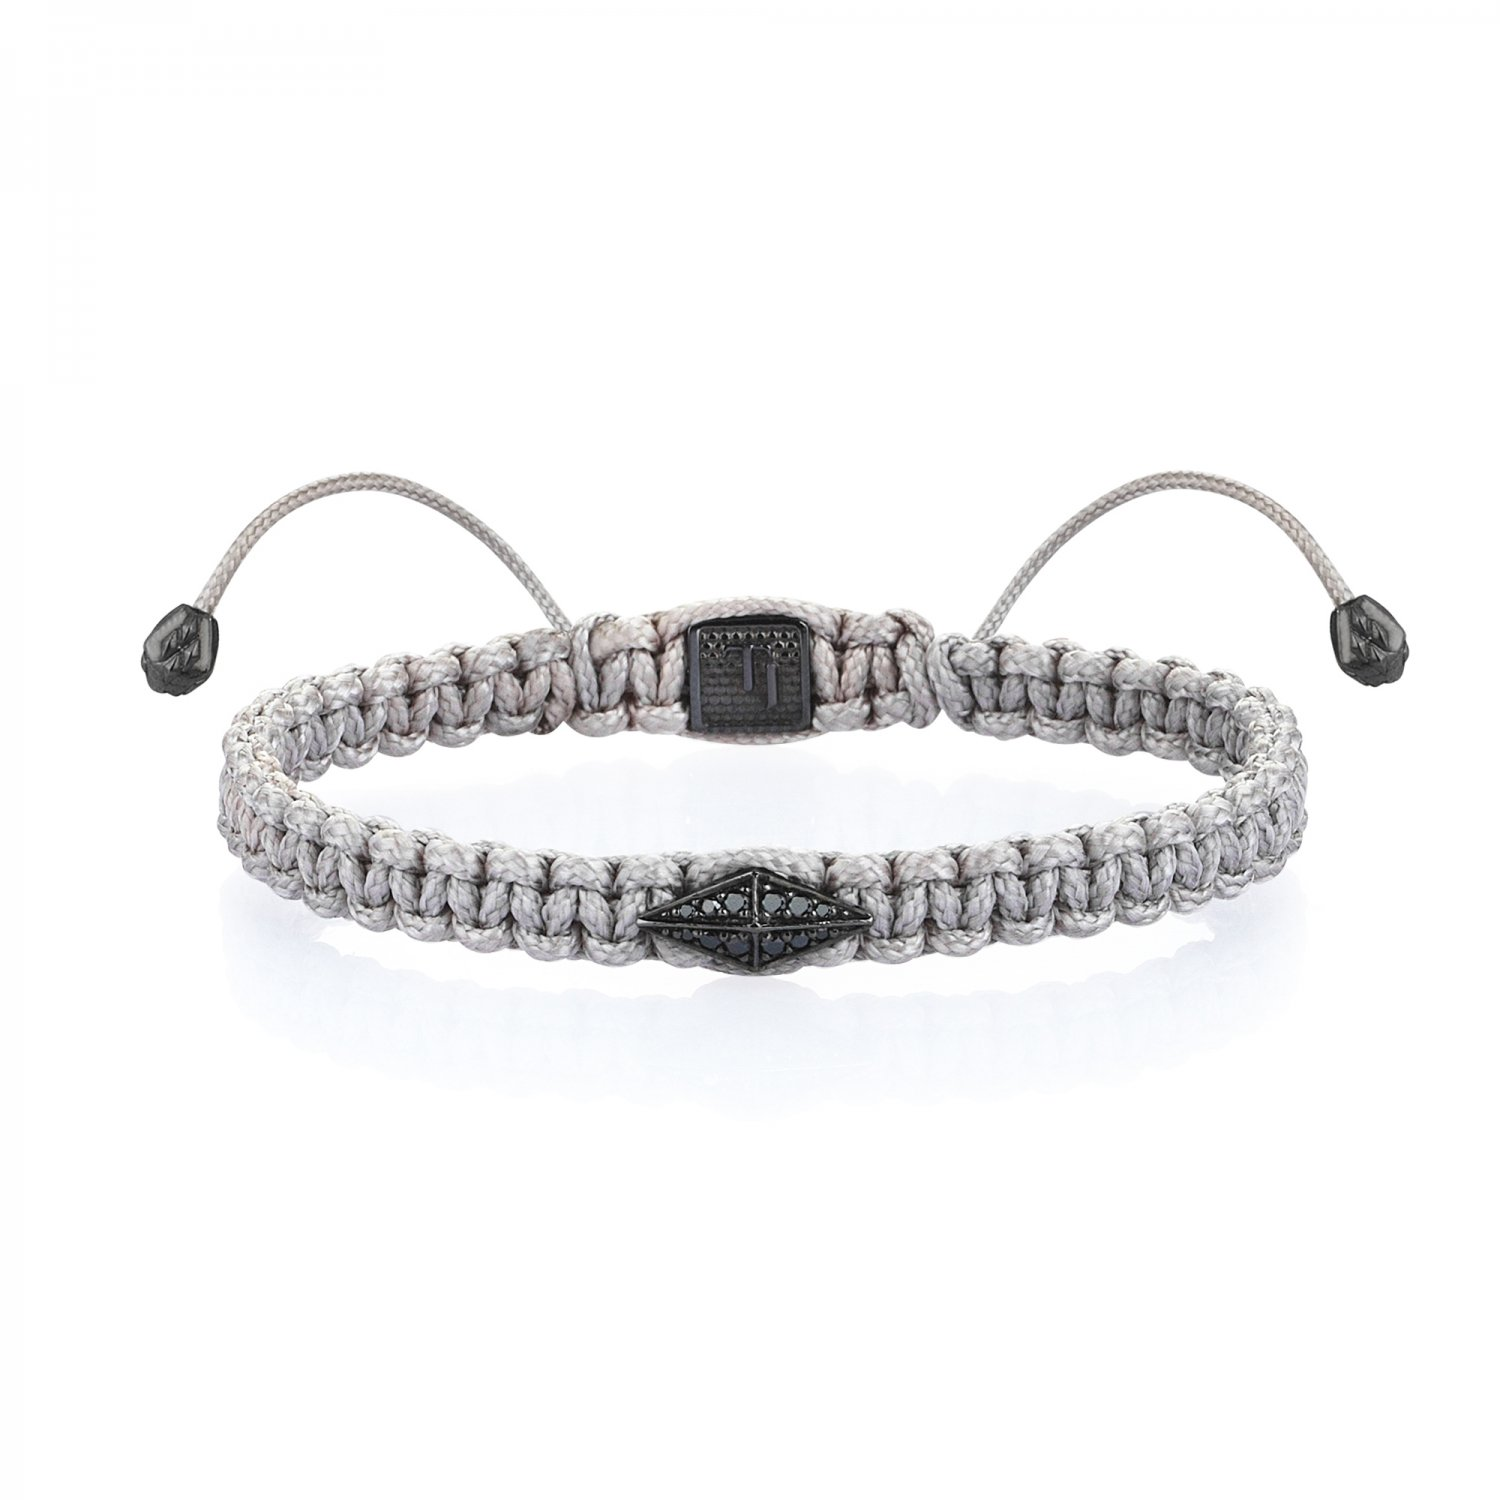 Gray Macrame Iconic Diamondback (1) Silver Bracelet in Black Rhodium with Black Diamonds